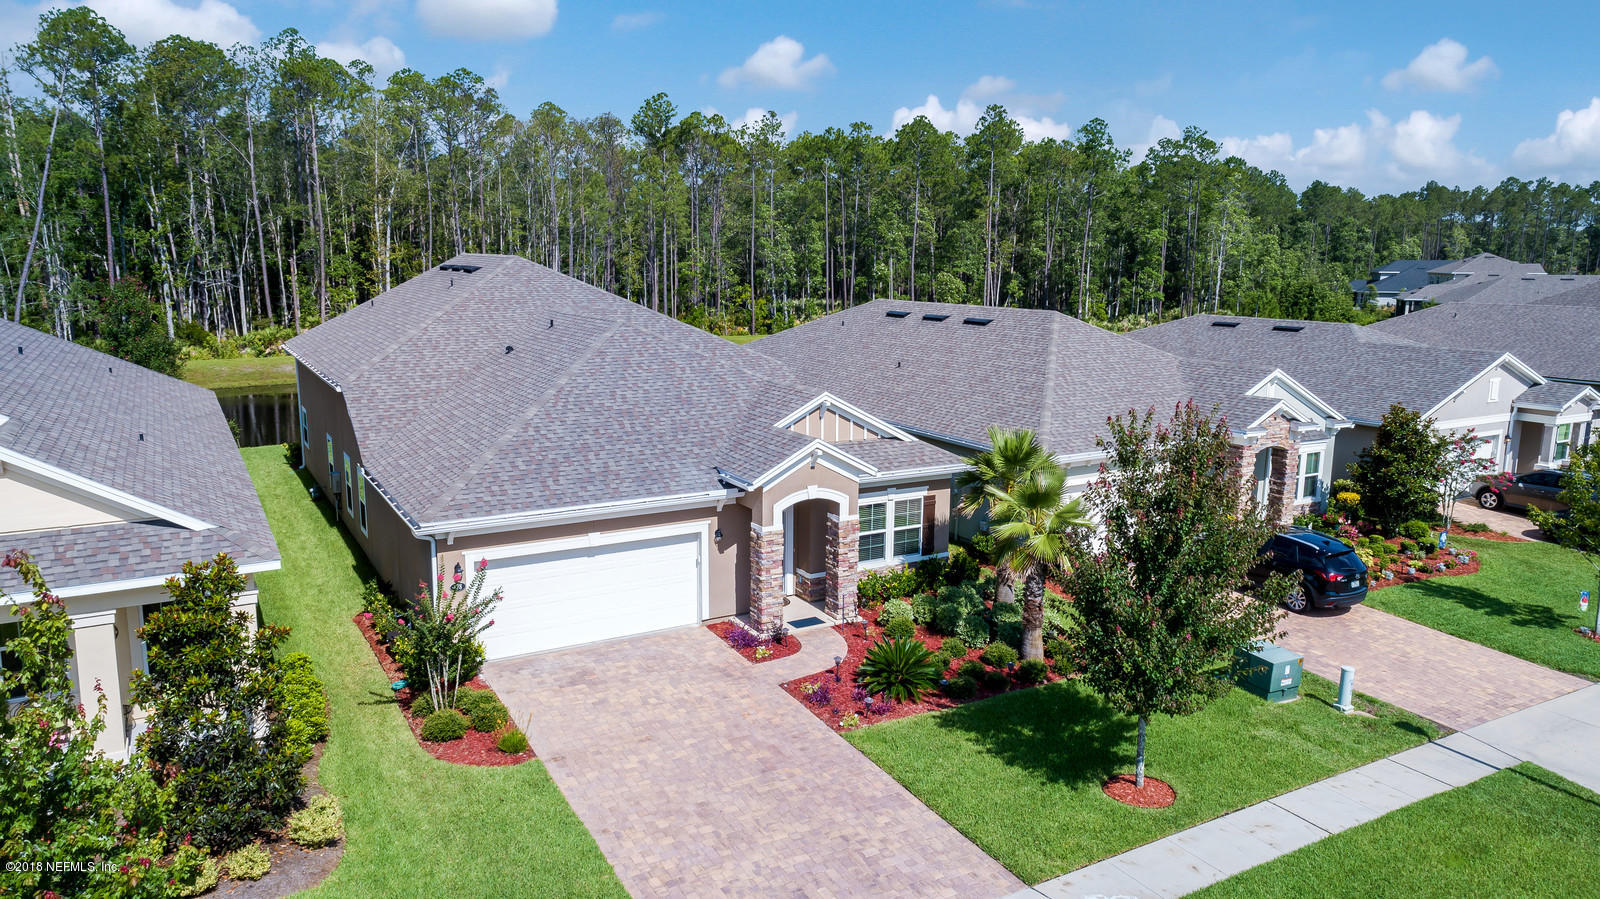 178 GRAY WOLF, JACKSONVILLE, FLORIDA 32081, 5 Bedrooms Bedrooms, ,3 BathroomsBathrooms,Residential - single family,For sale,GRAY WOLF,943744